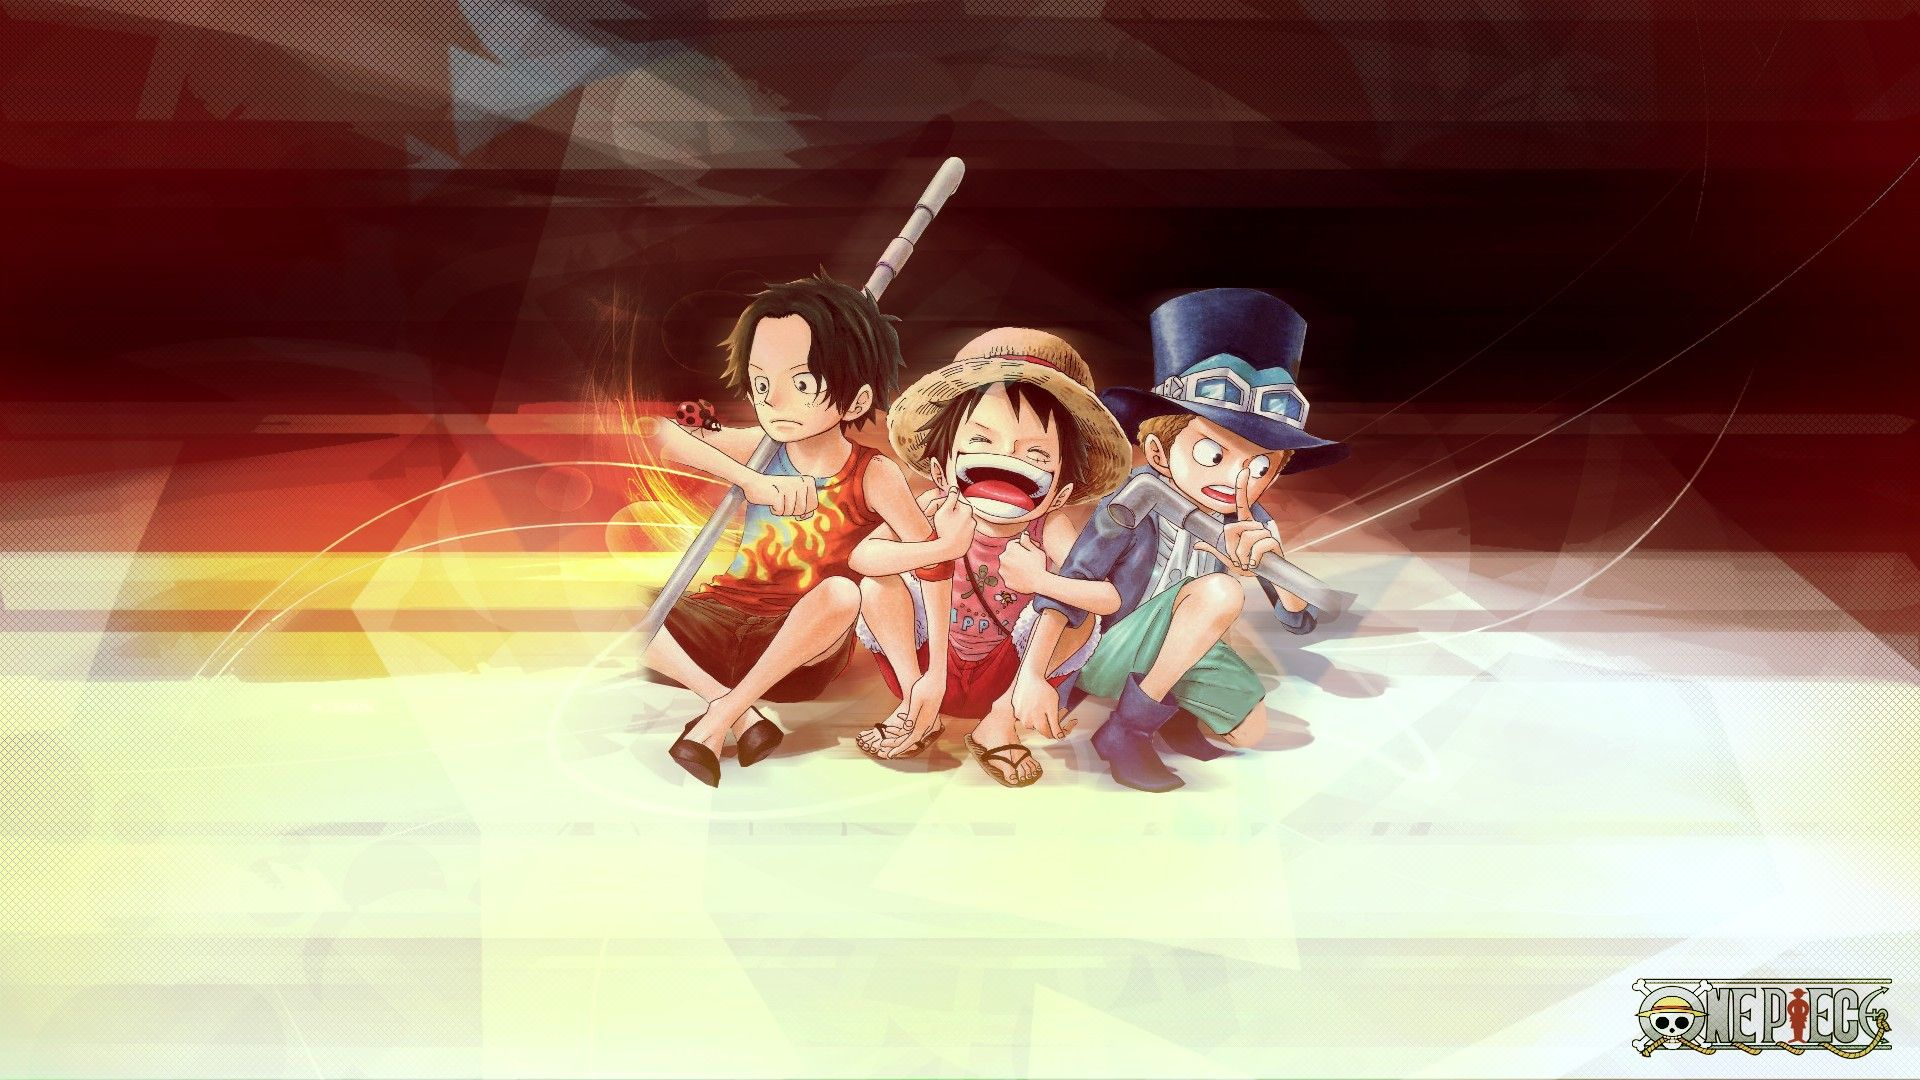 ace, sabo and luffy on one piece anime wallpaper | one piece